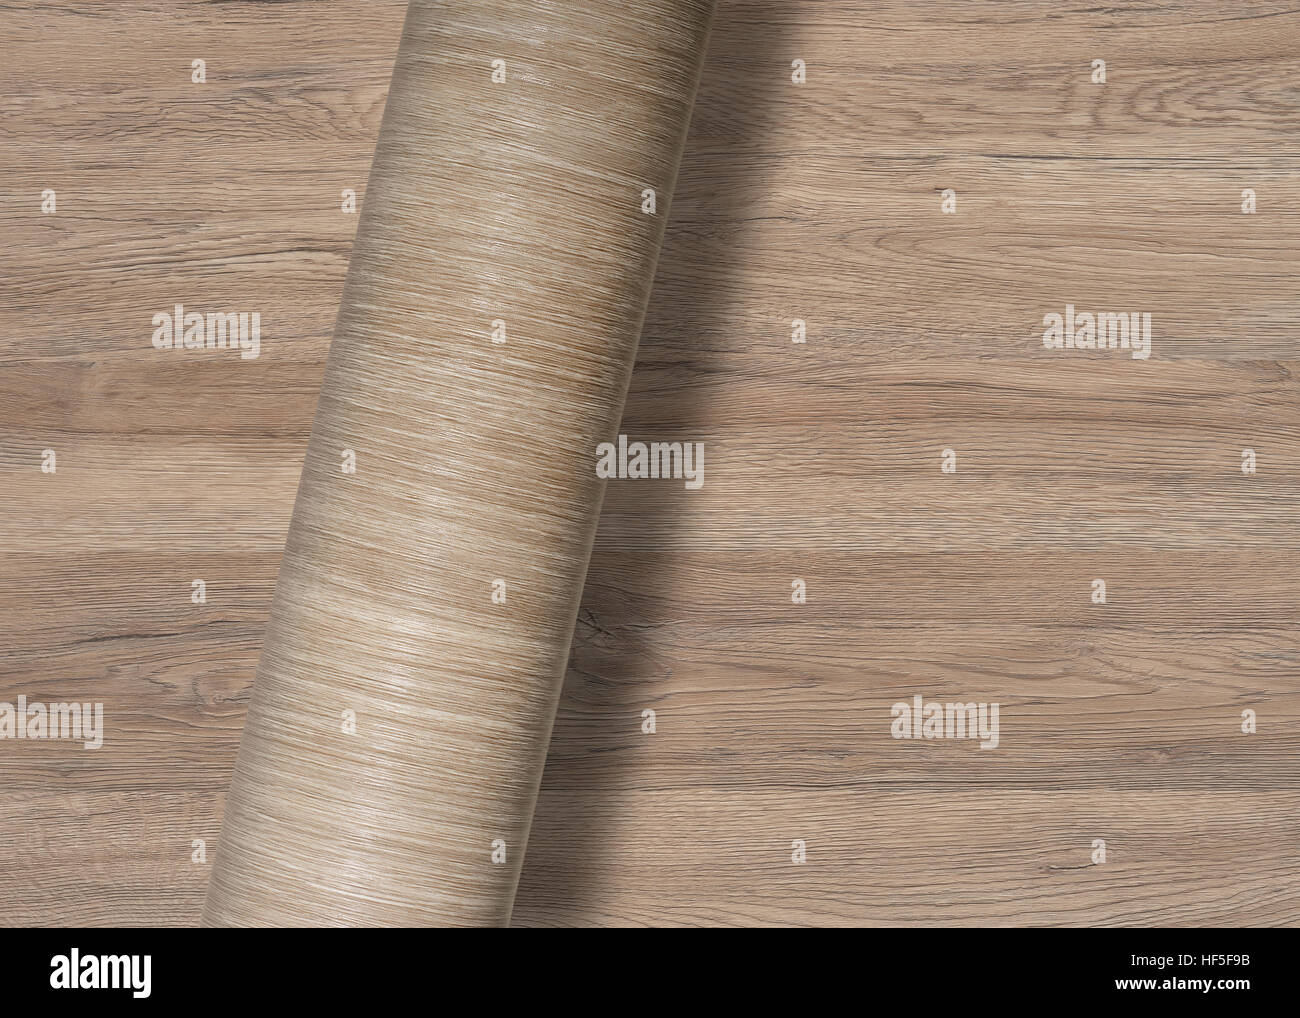 rolled wood-textured surface over same full frame textured background - Stock Image